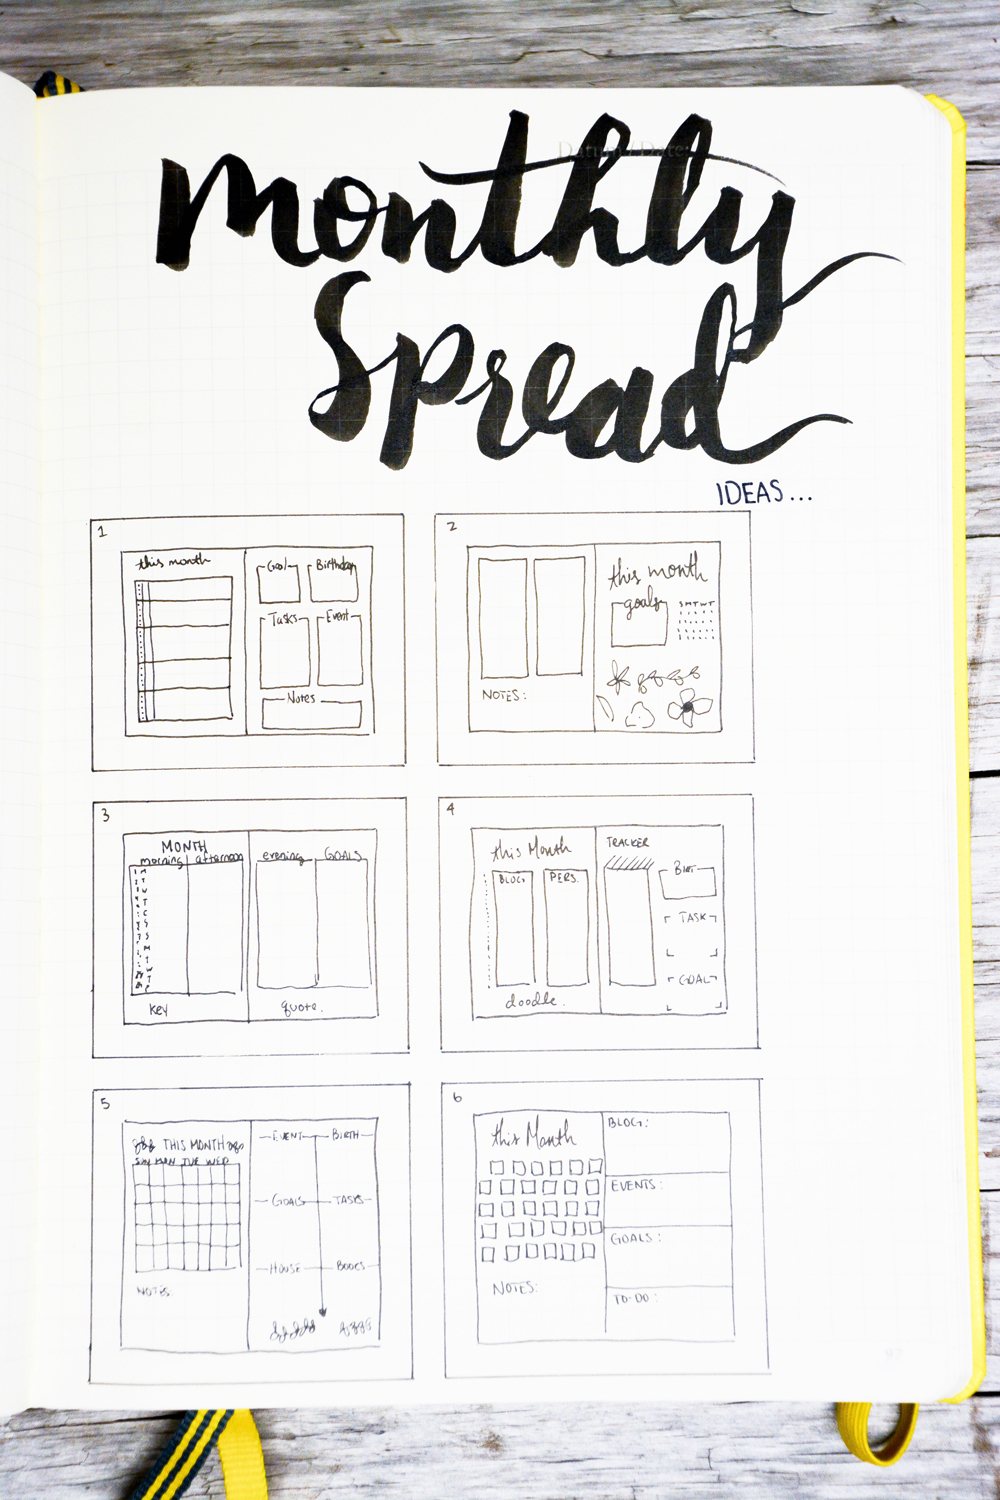 lettering template